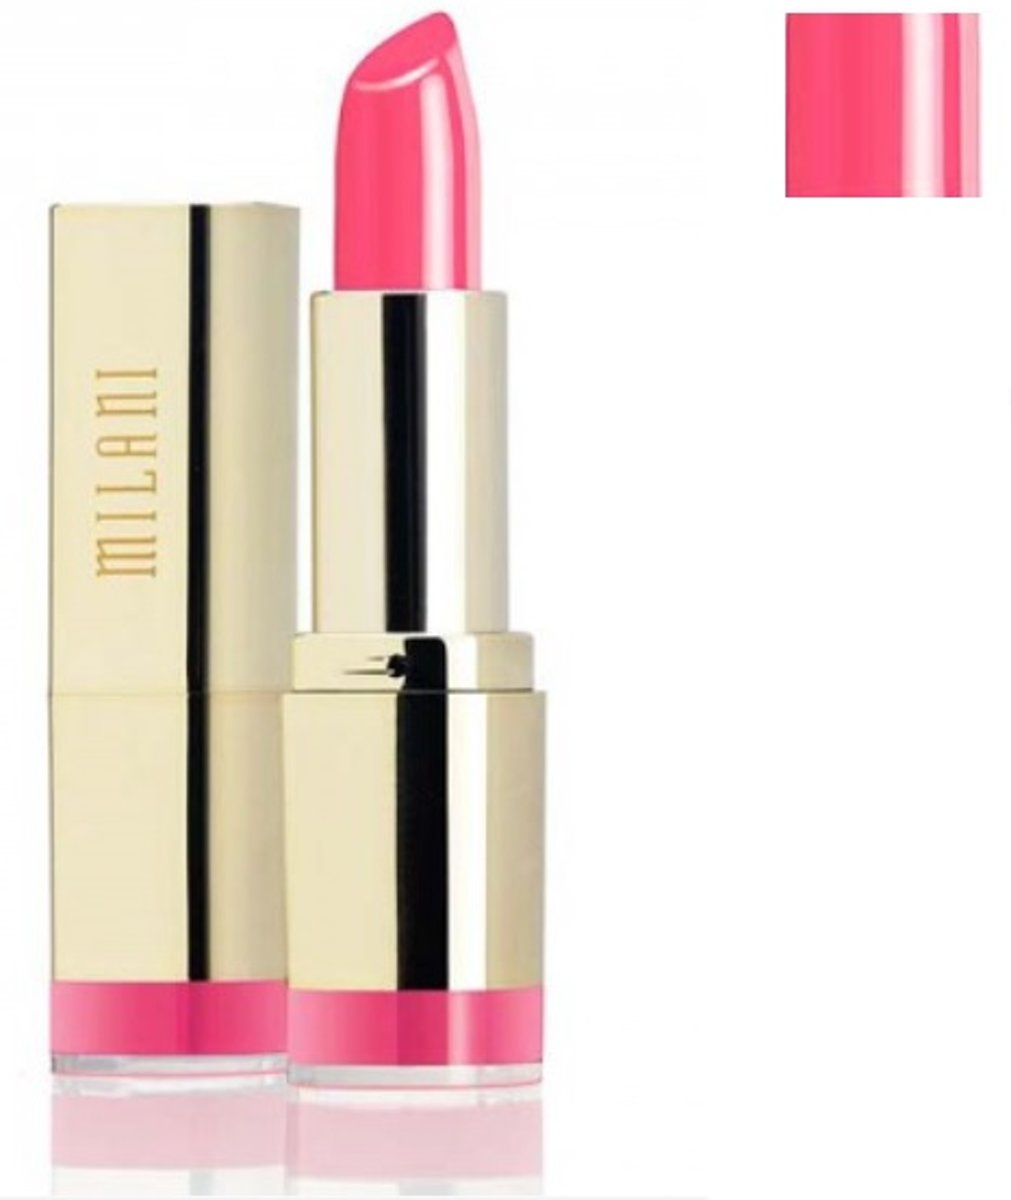 Carnauba Wax Kopen Milani Color Statement Lipstick Pink Love 41